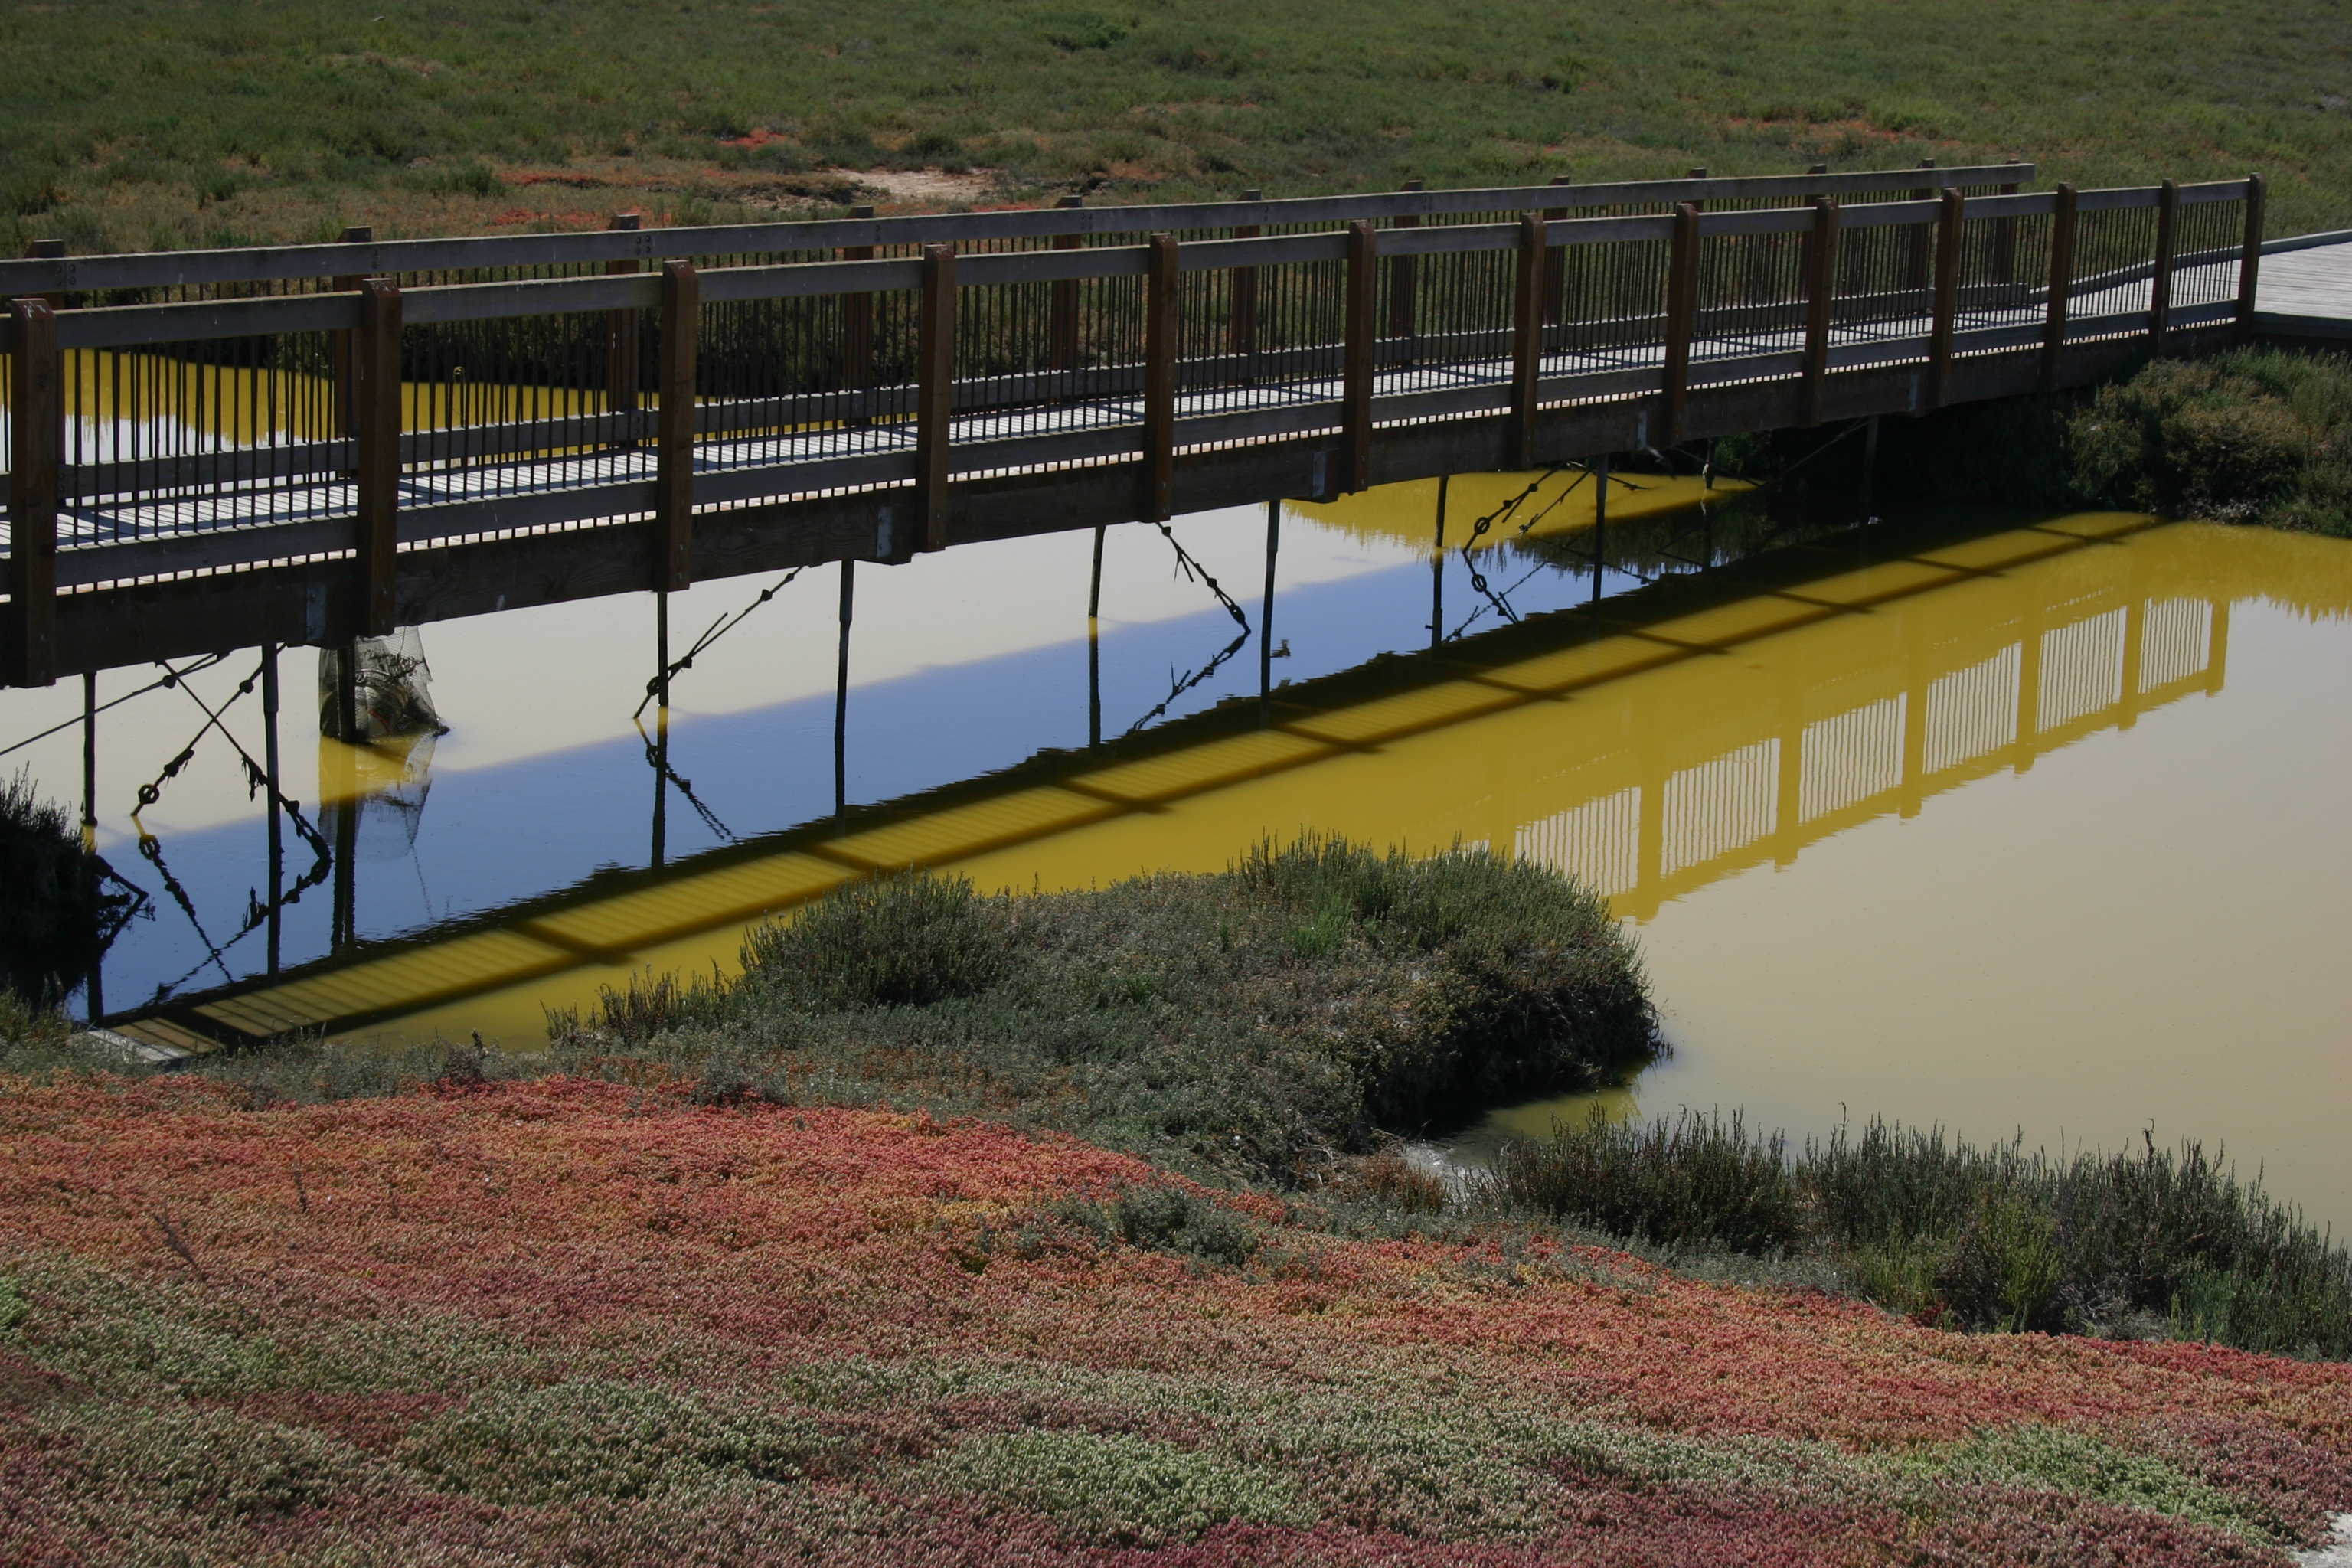 A boardwalk bridge spans the stagnant green water of a salt marsh near a colorful bank.